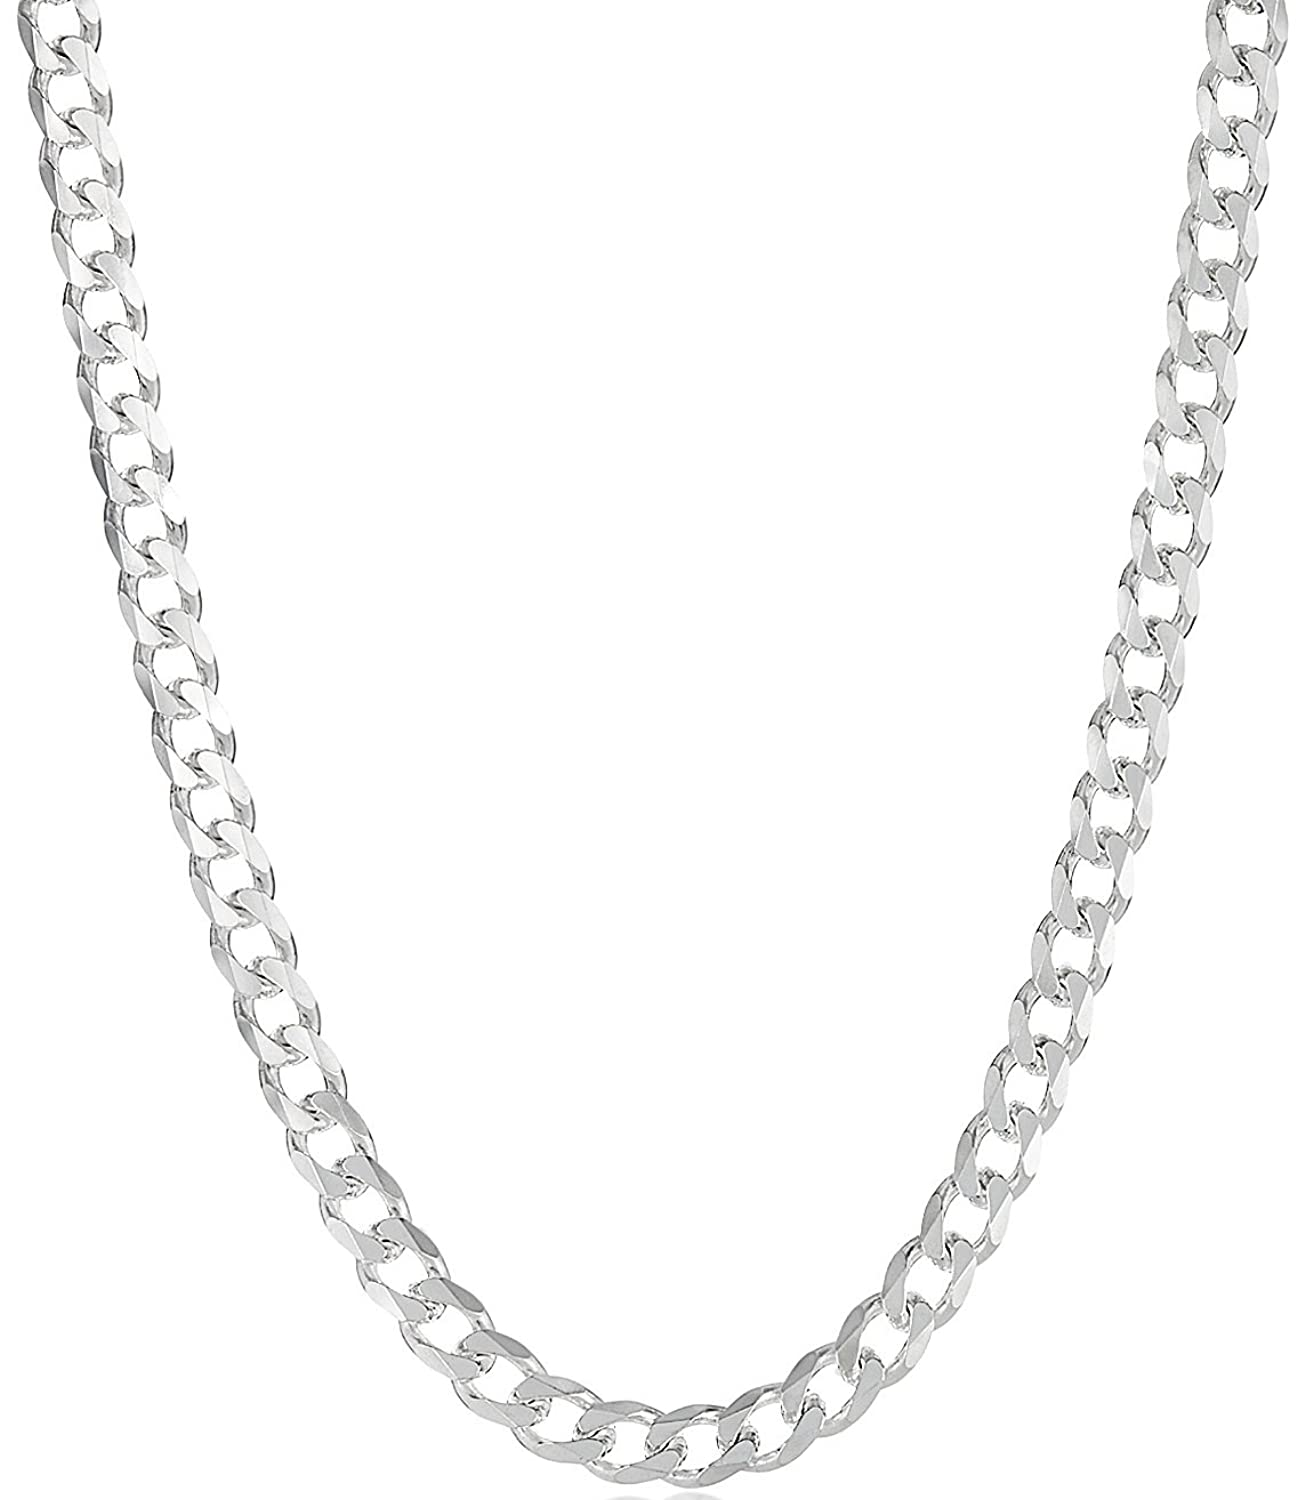 """.925 Sterling Silver Italian Cuban Link Curb Chain, 3mm-11mm, 16""""-40"""" Necklace or 7""""-10"""" Bracelet/Anklet"""